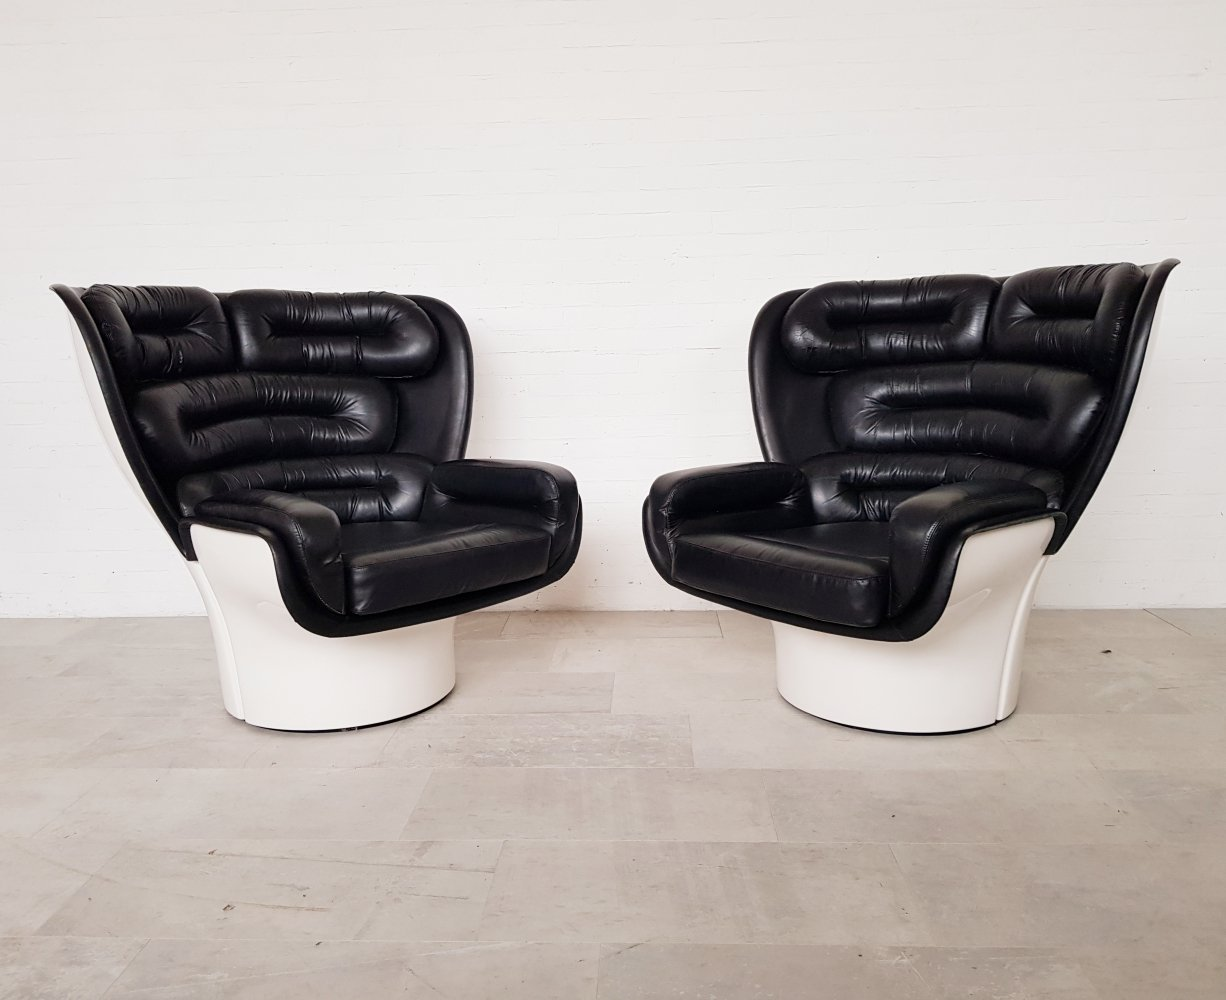 Set of 2 Elda chairs by Joe Colombo for Comfort Italy, 1960s